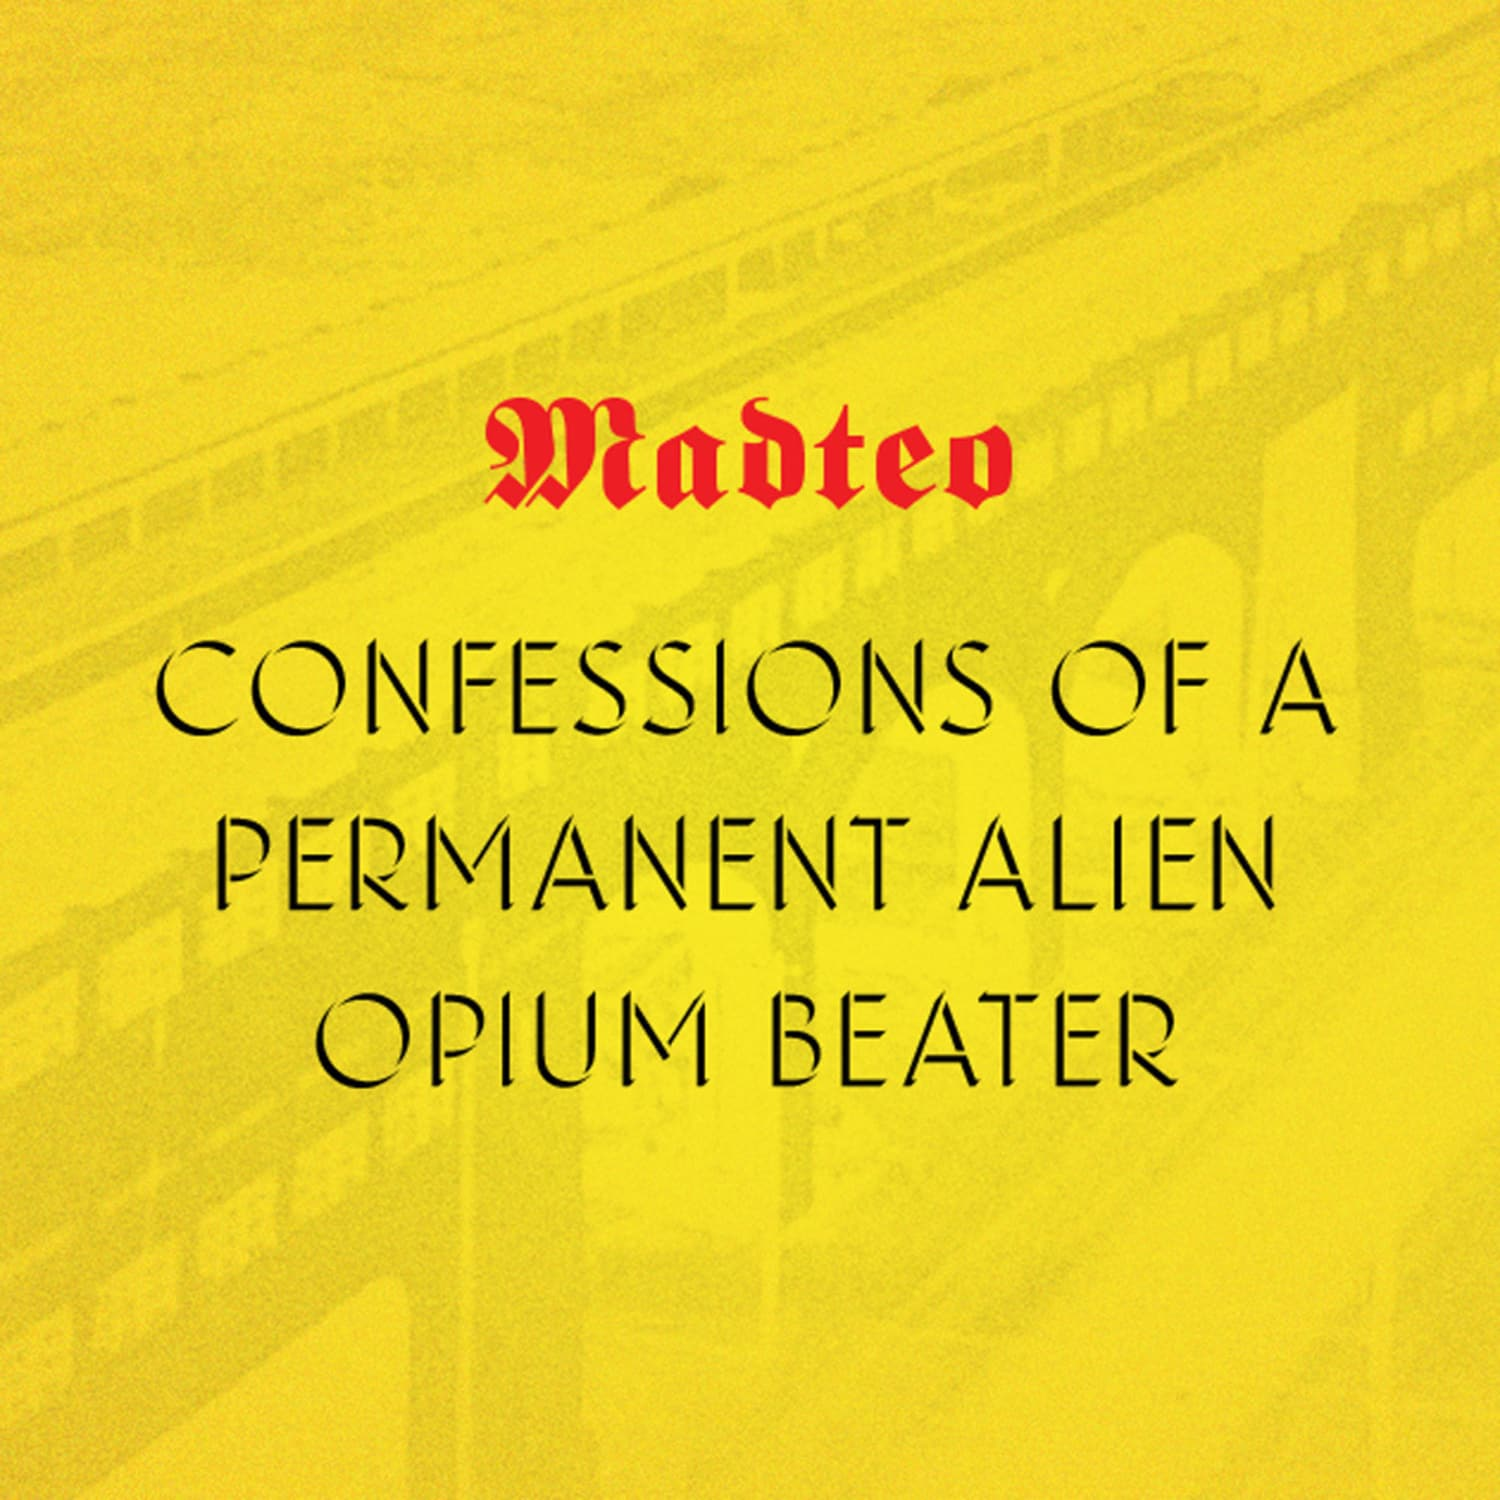 Madteo - CONFESSIONS OF A PERMANENT ALIEN OPIUM BEATER